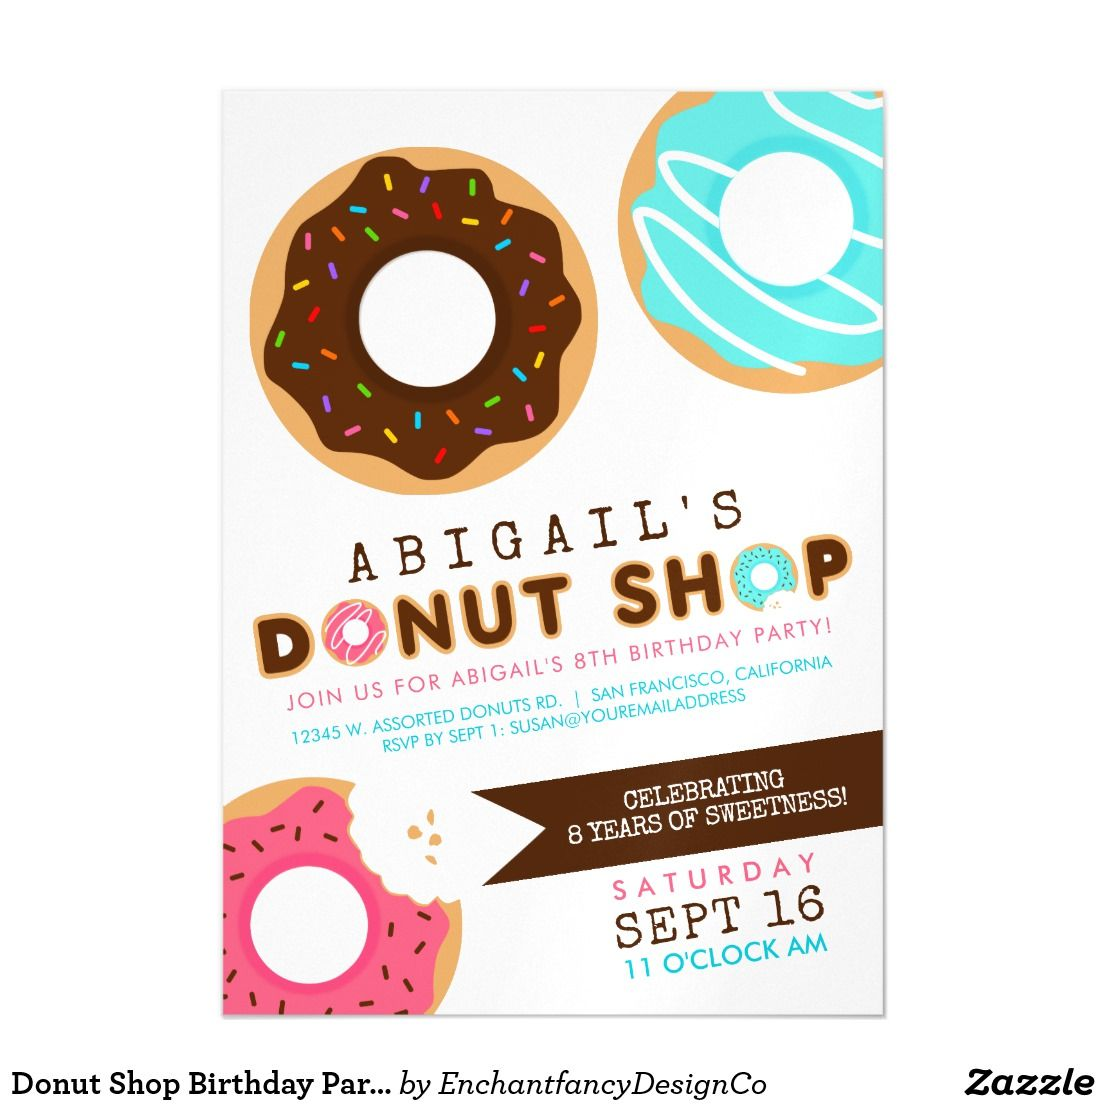 Donut Shop Birthday Party Magnetic Card The Donut Shop Birthday